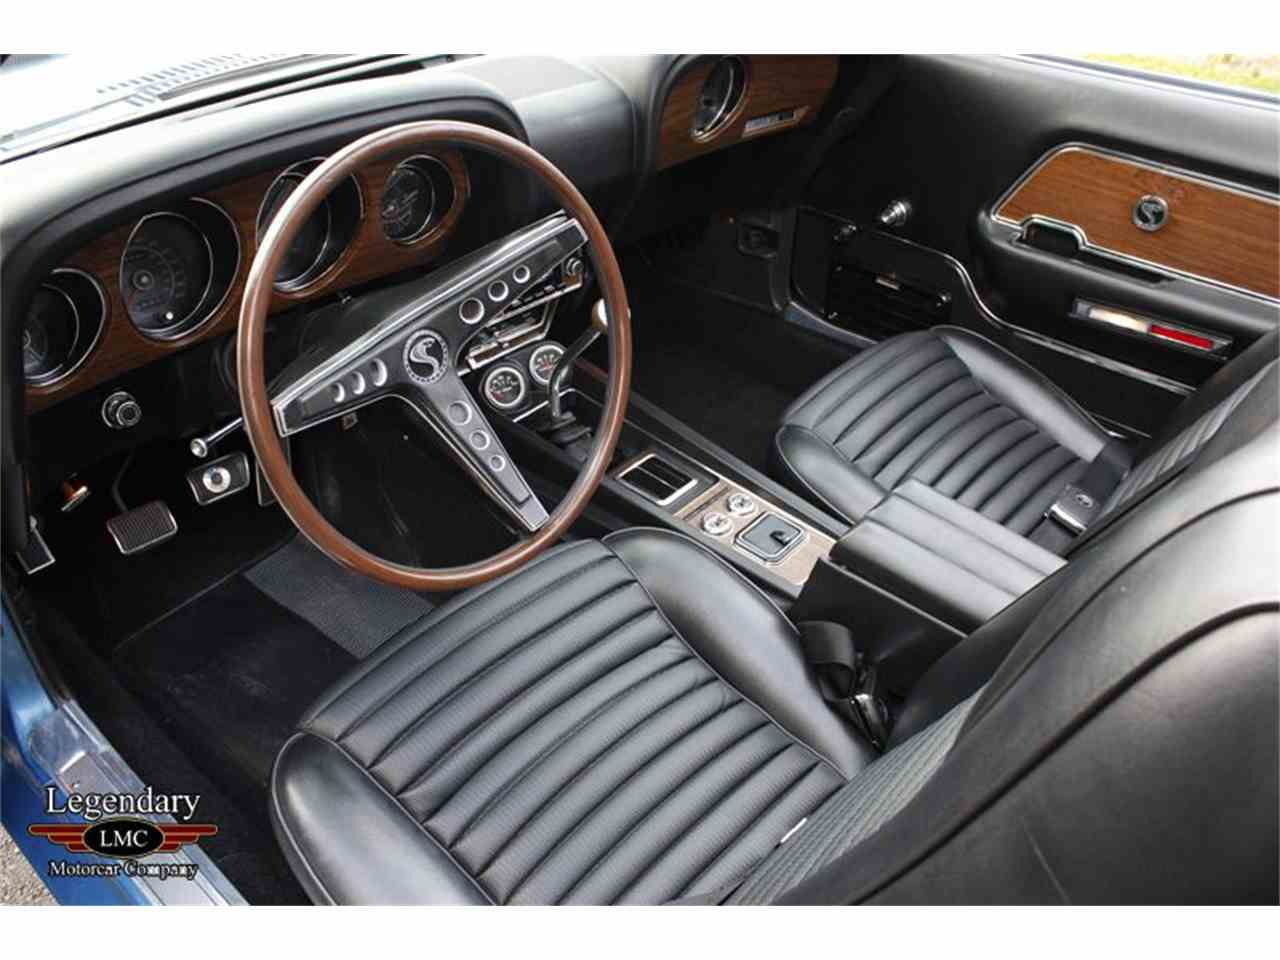 Large Picture of 1969 Shelby GT350 located in Halton Hills Ontario - $145,000.00 - LB22